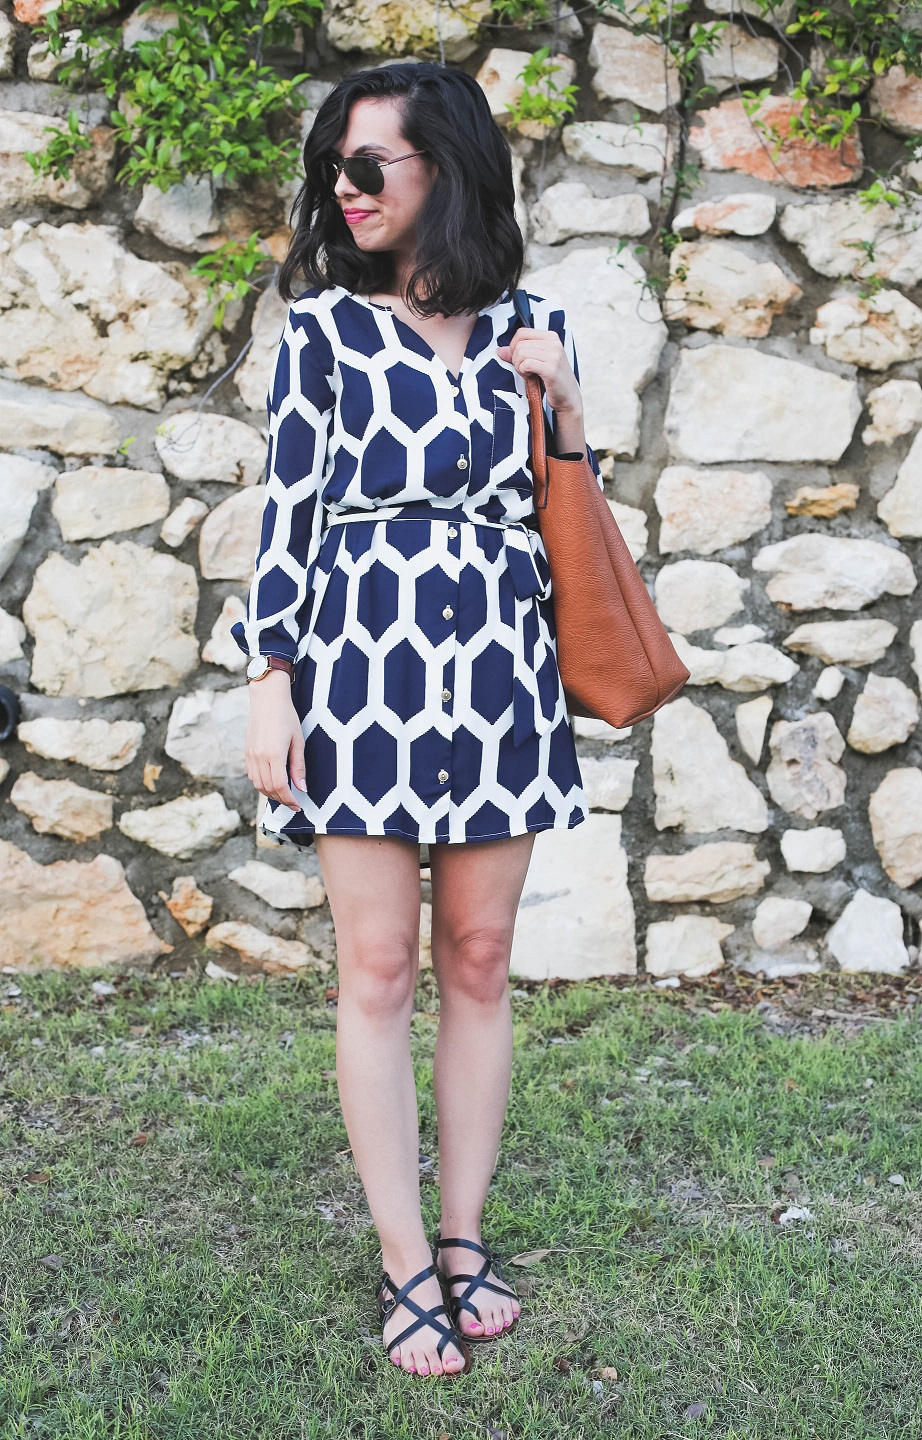 austin texas, austin fashion blog, austin fashion blogger, austin fashion, austin fashion blog, long sleeve navy dress, target black sandals, nordstrom reversible tote bag, urban outfitters map watch